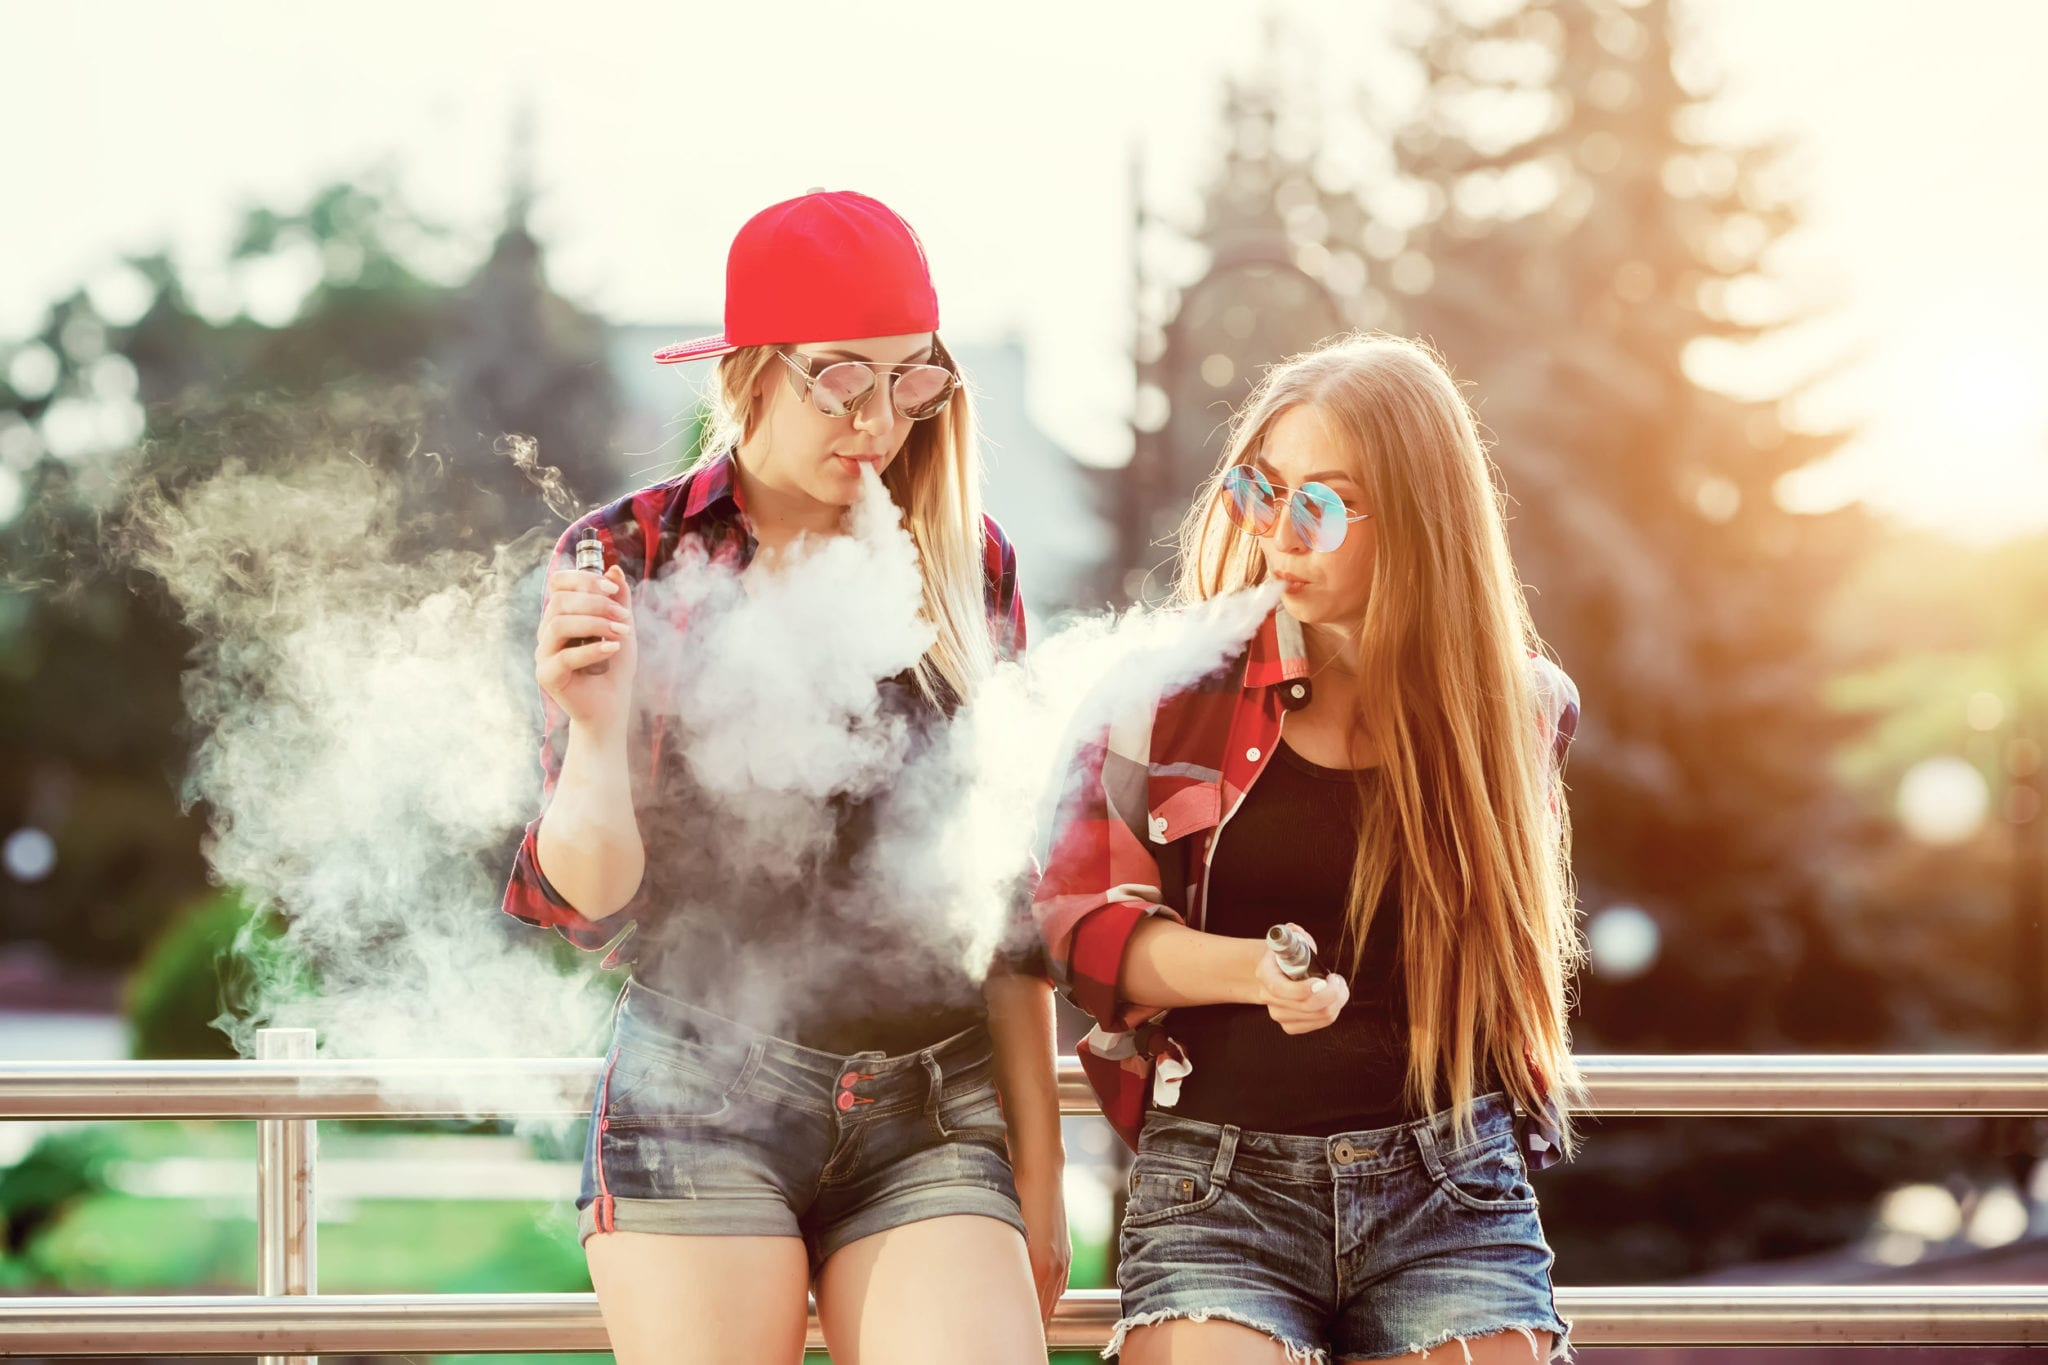 Texas Teens Account for 1 in 4 Injuries Due to Vaping